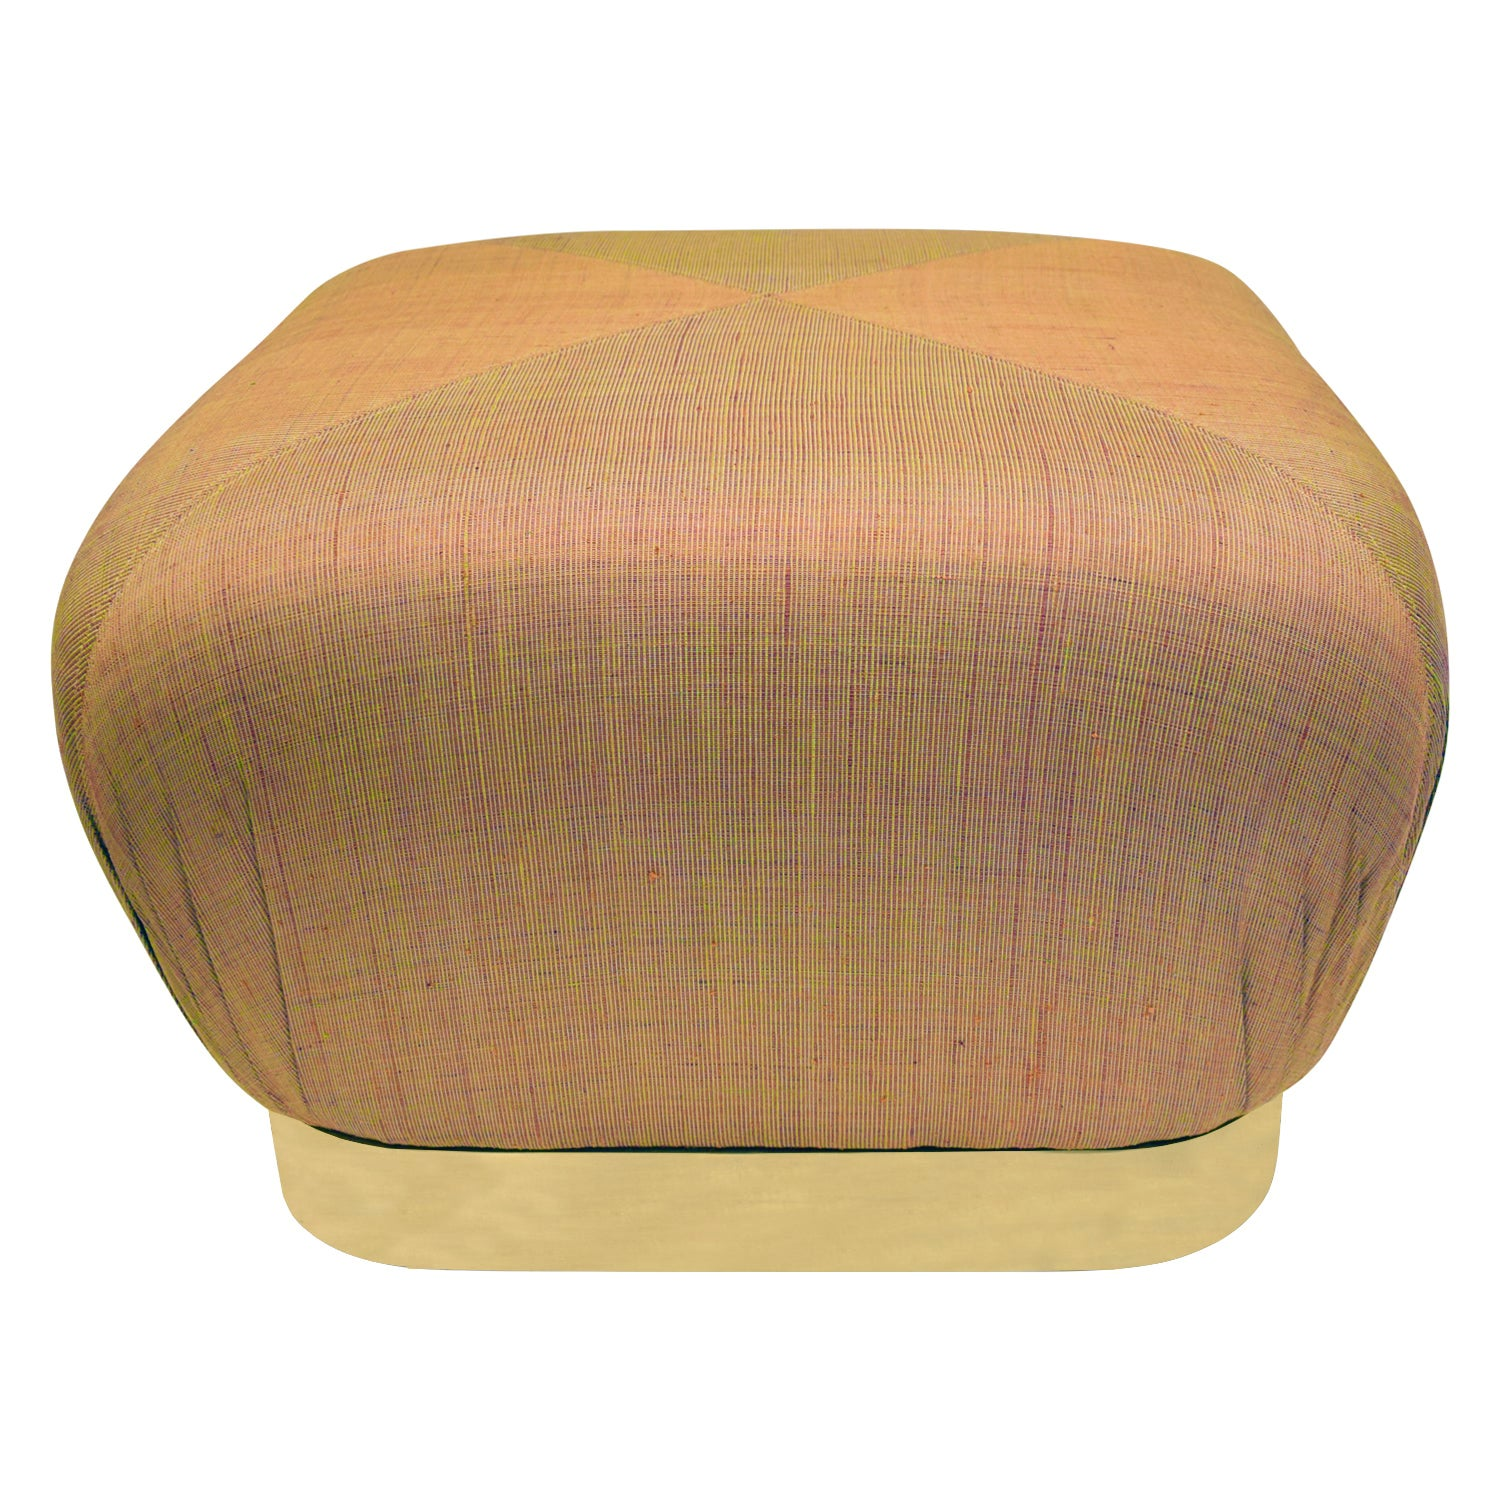 "Karl Springer ""Souffle Ottoman"" in Brass and Silk Upholstery, 1980s"